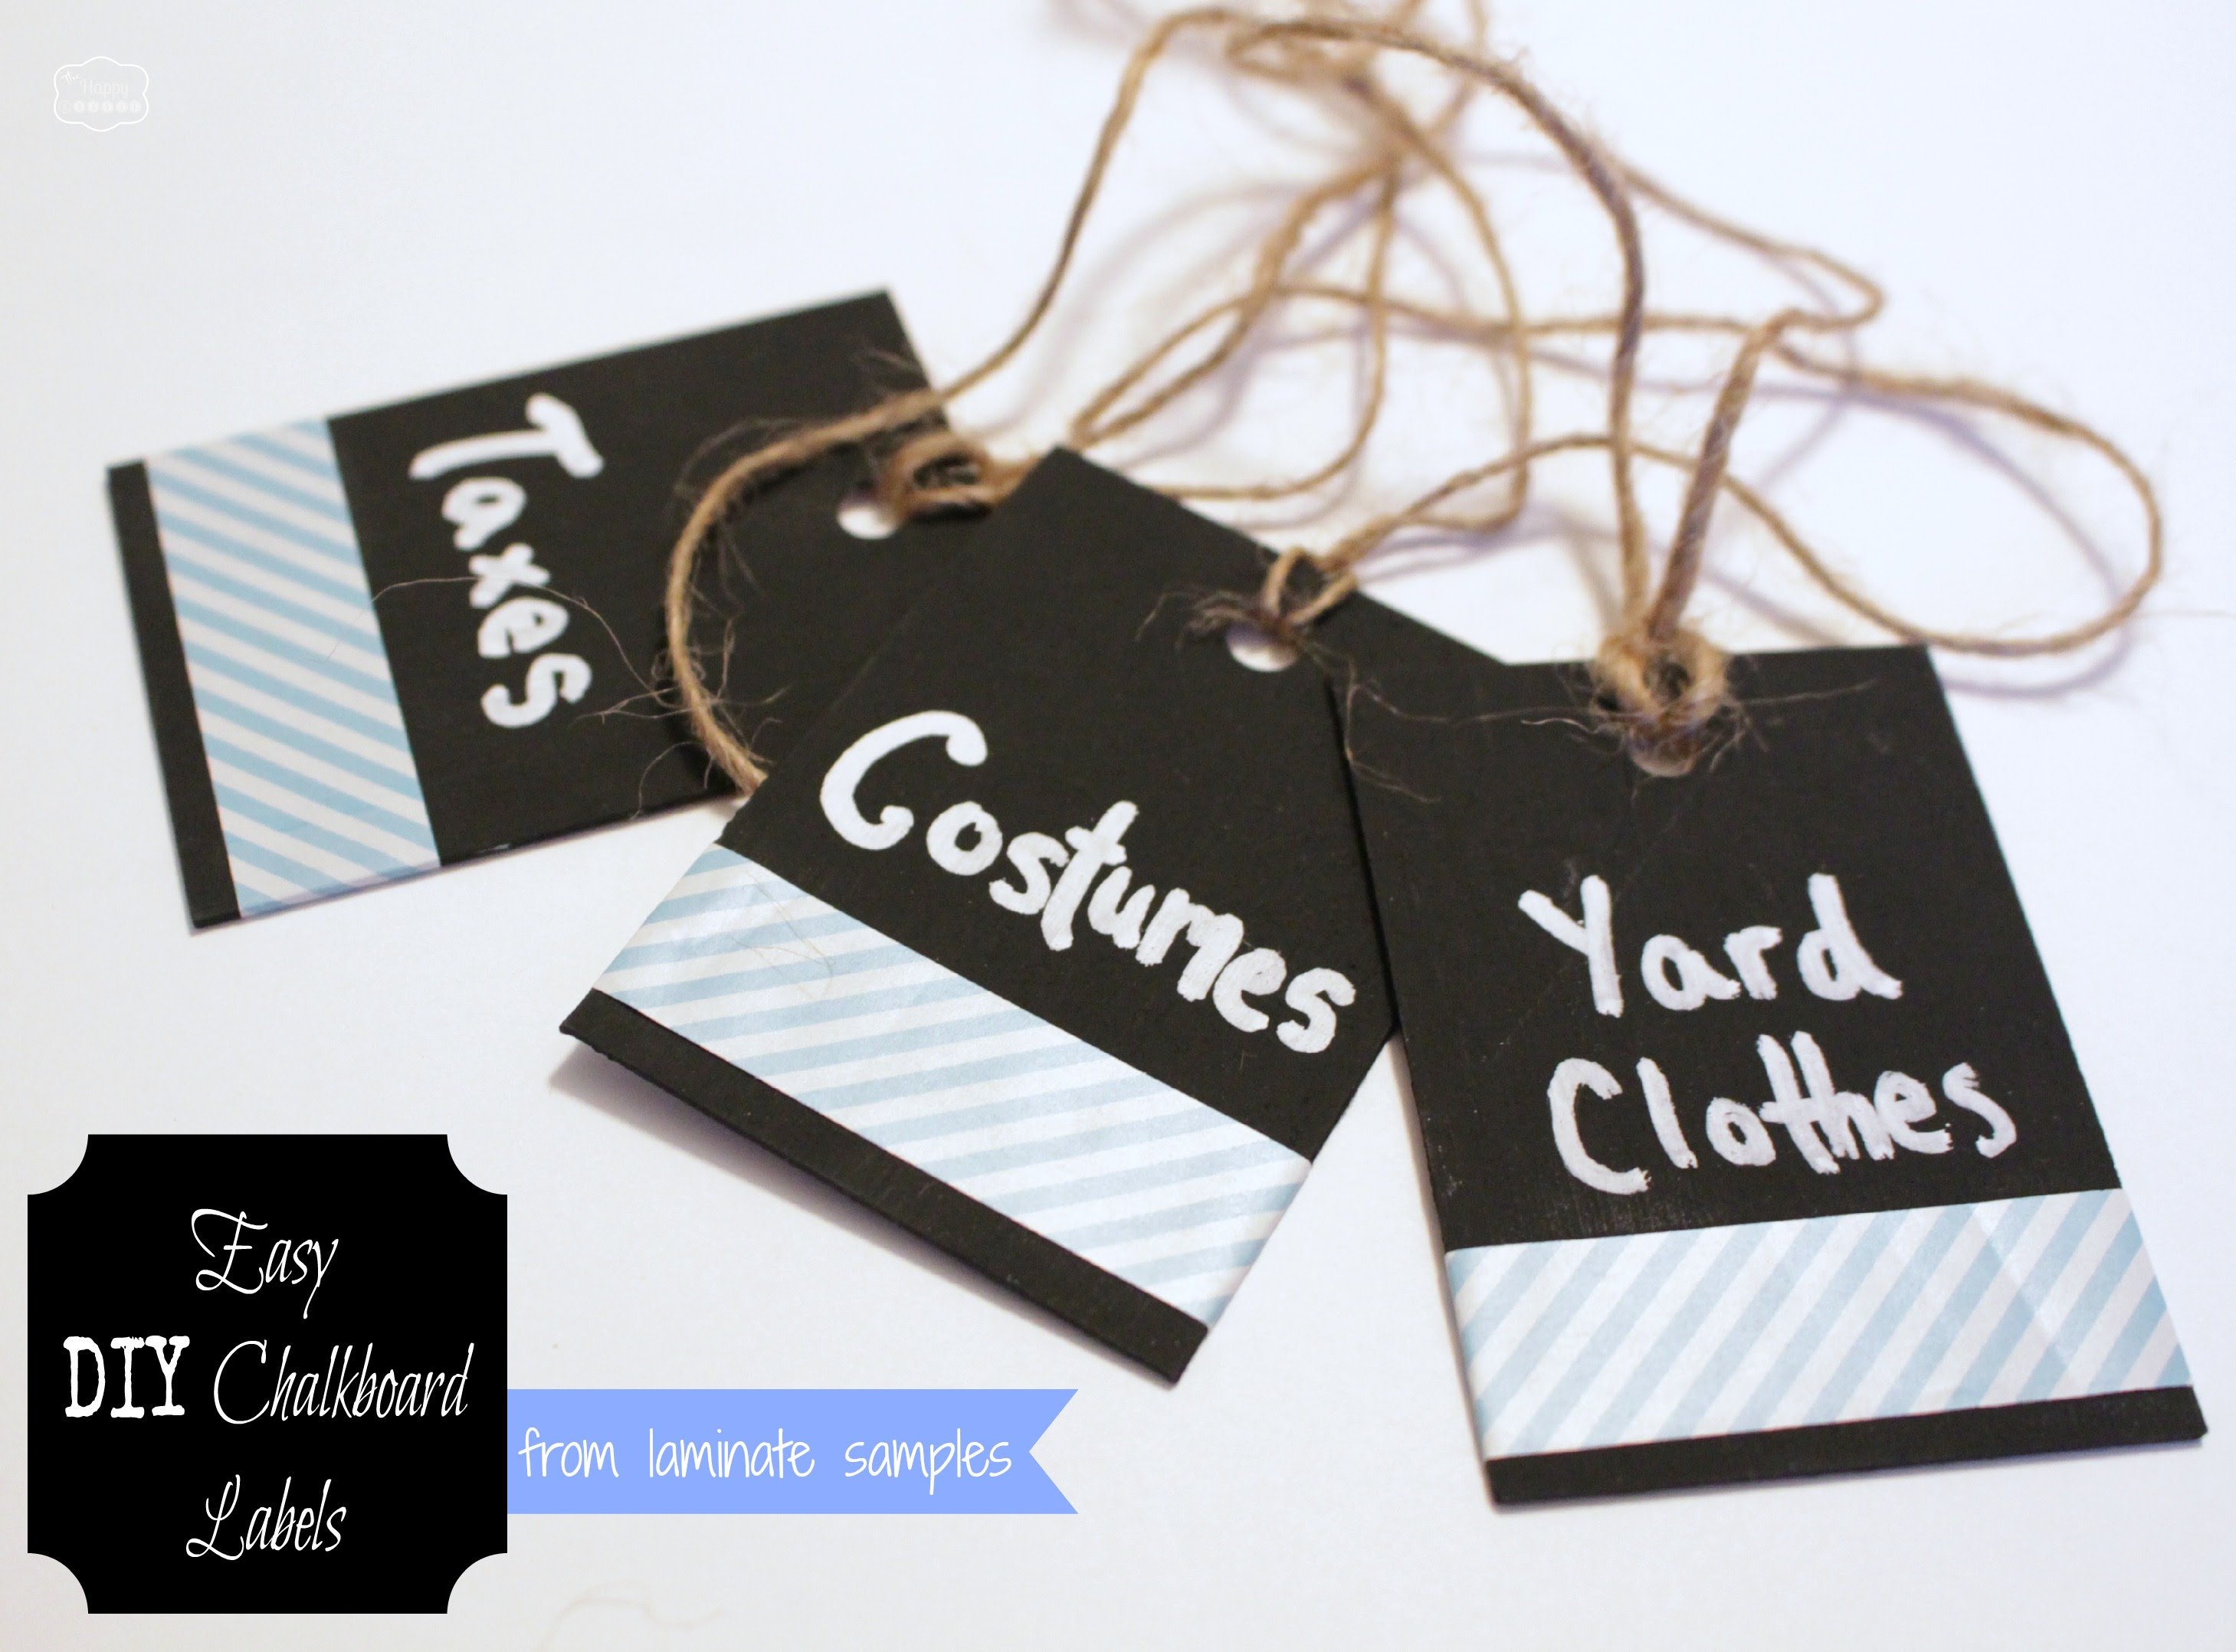 http://thehappyhousie.com/wp-content/uploads/2014/01/Easy-DIY-Chalkboard-Labels-from-laminate-samples-at-The-Happy-Housie.jpg